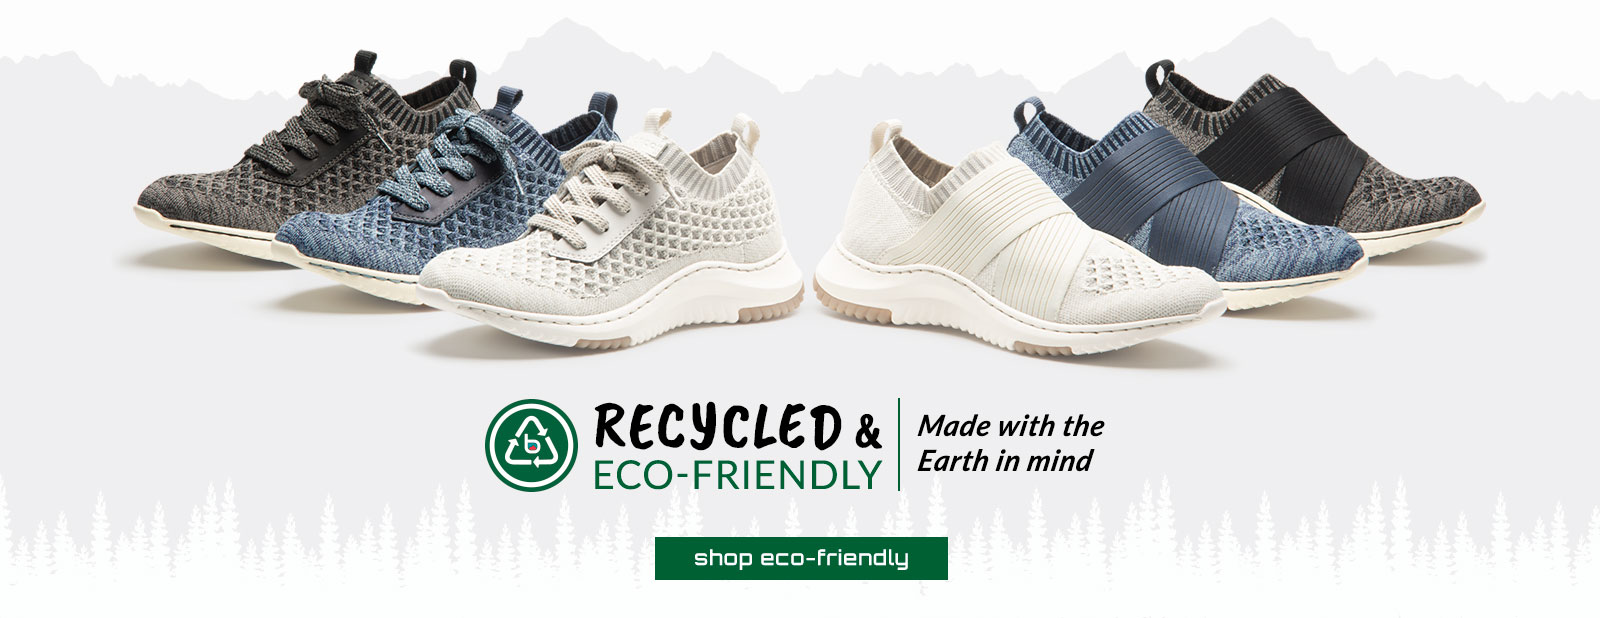 Recycled & eco-friendly. Made with the Earth in mind. Featured styles: Eco-Friendly Onie in white, blue and black. Eco-Friendly Ocean in white, blue and black. Shop Eco-Friendly.